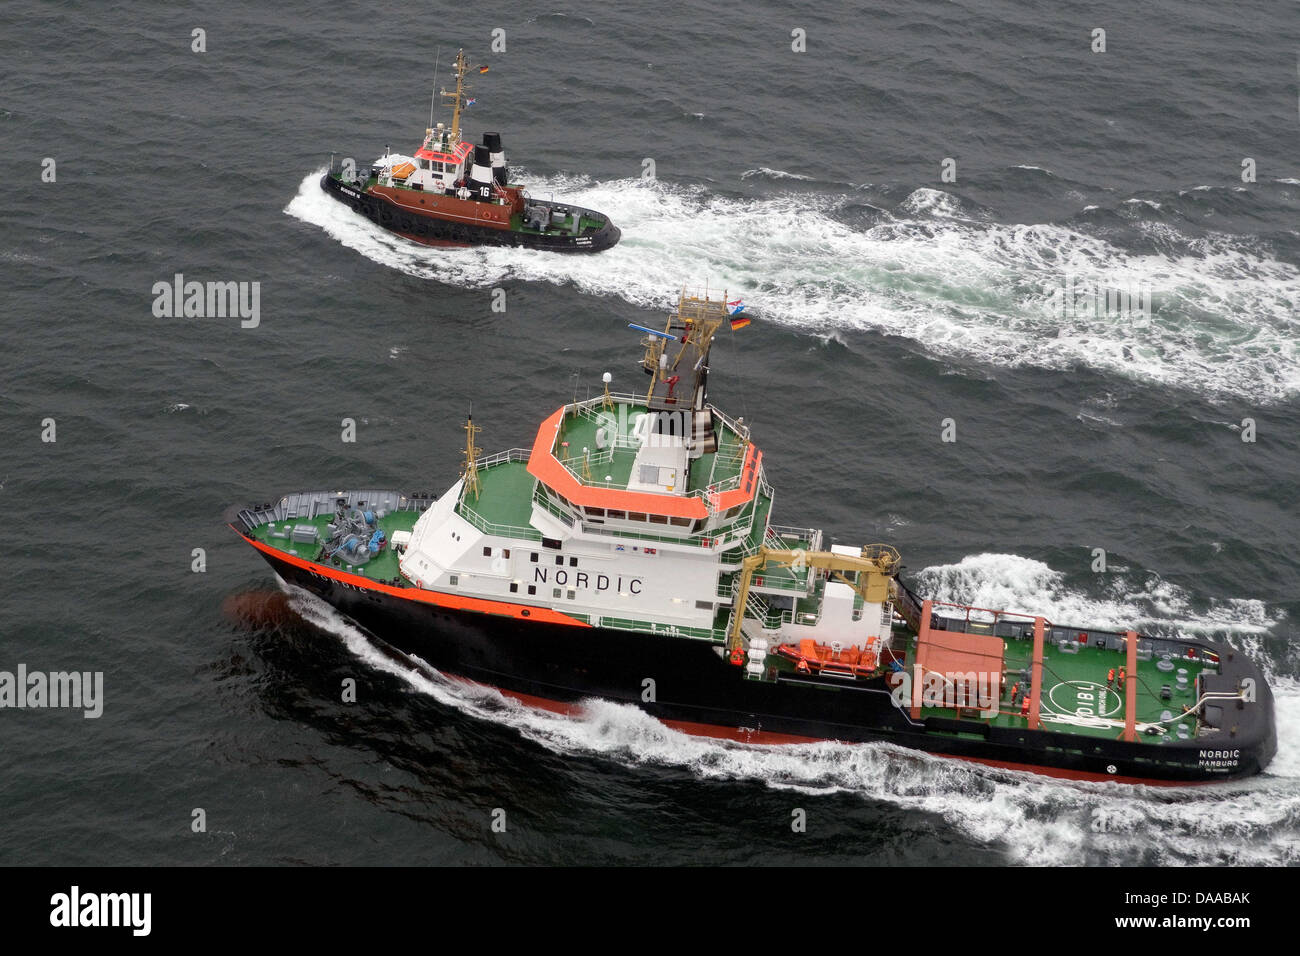 A Bugsier shipowning company handout of tugboat 'Nordic' off Helgoland, Germany, 10 January 2011. - Stock Image